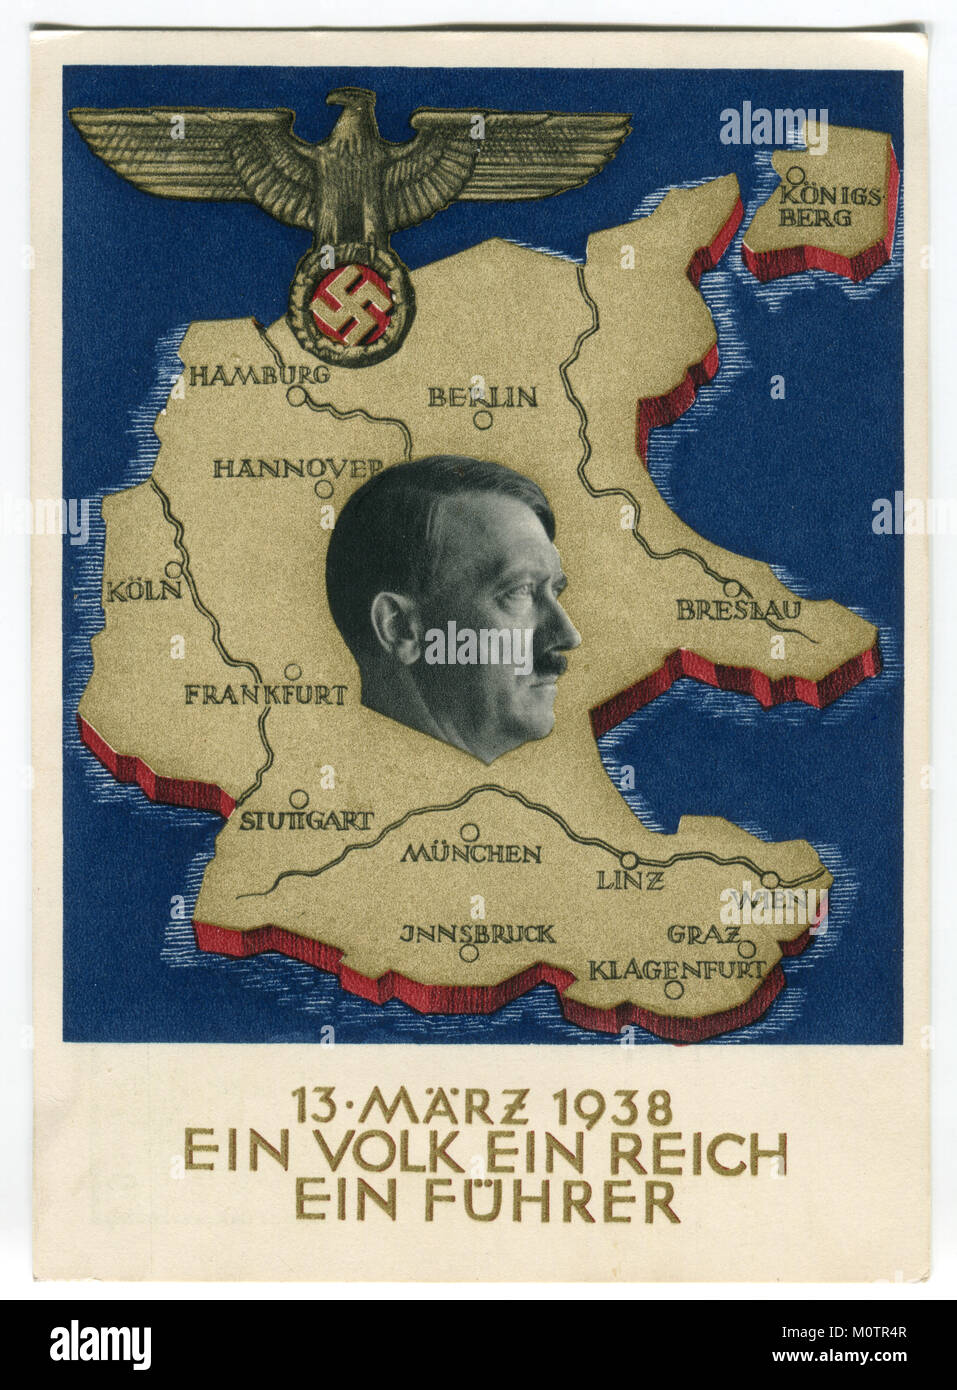 Old German postcard 'ein volk ein reich ein führer' 1938, Germany, the third Reich, the second world - Stock Image